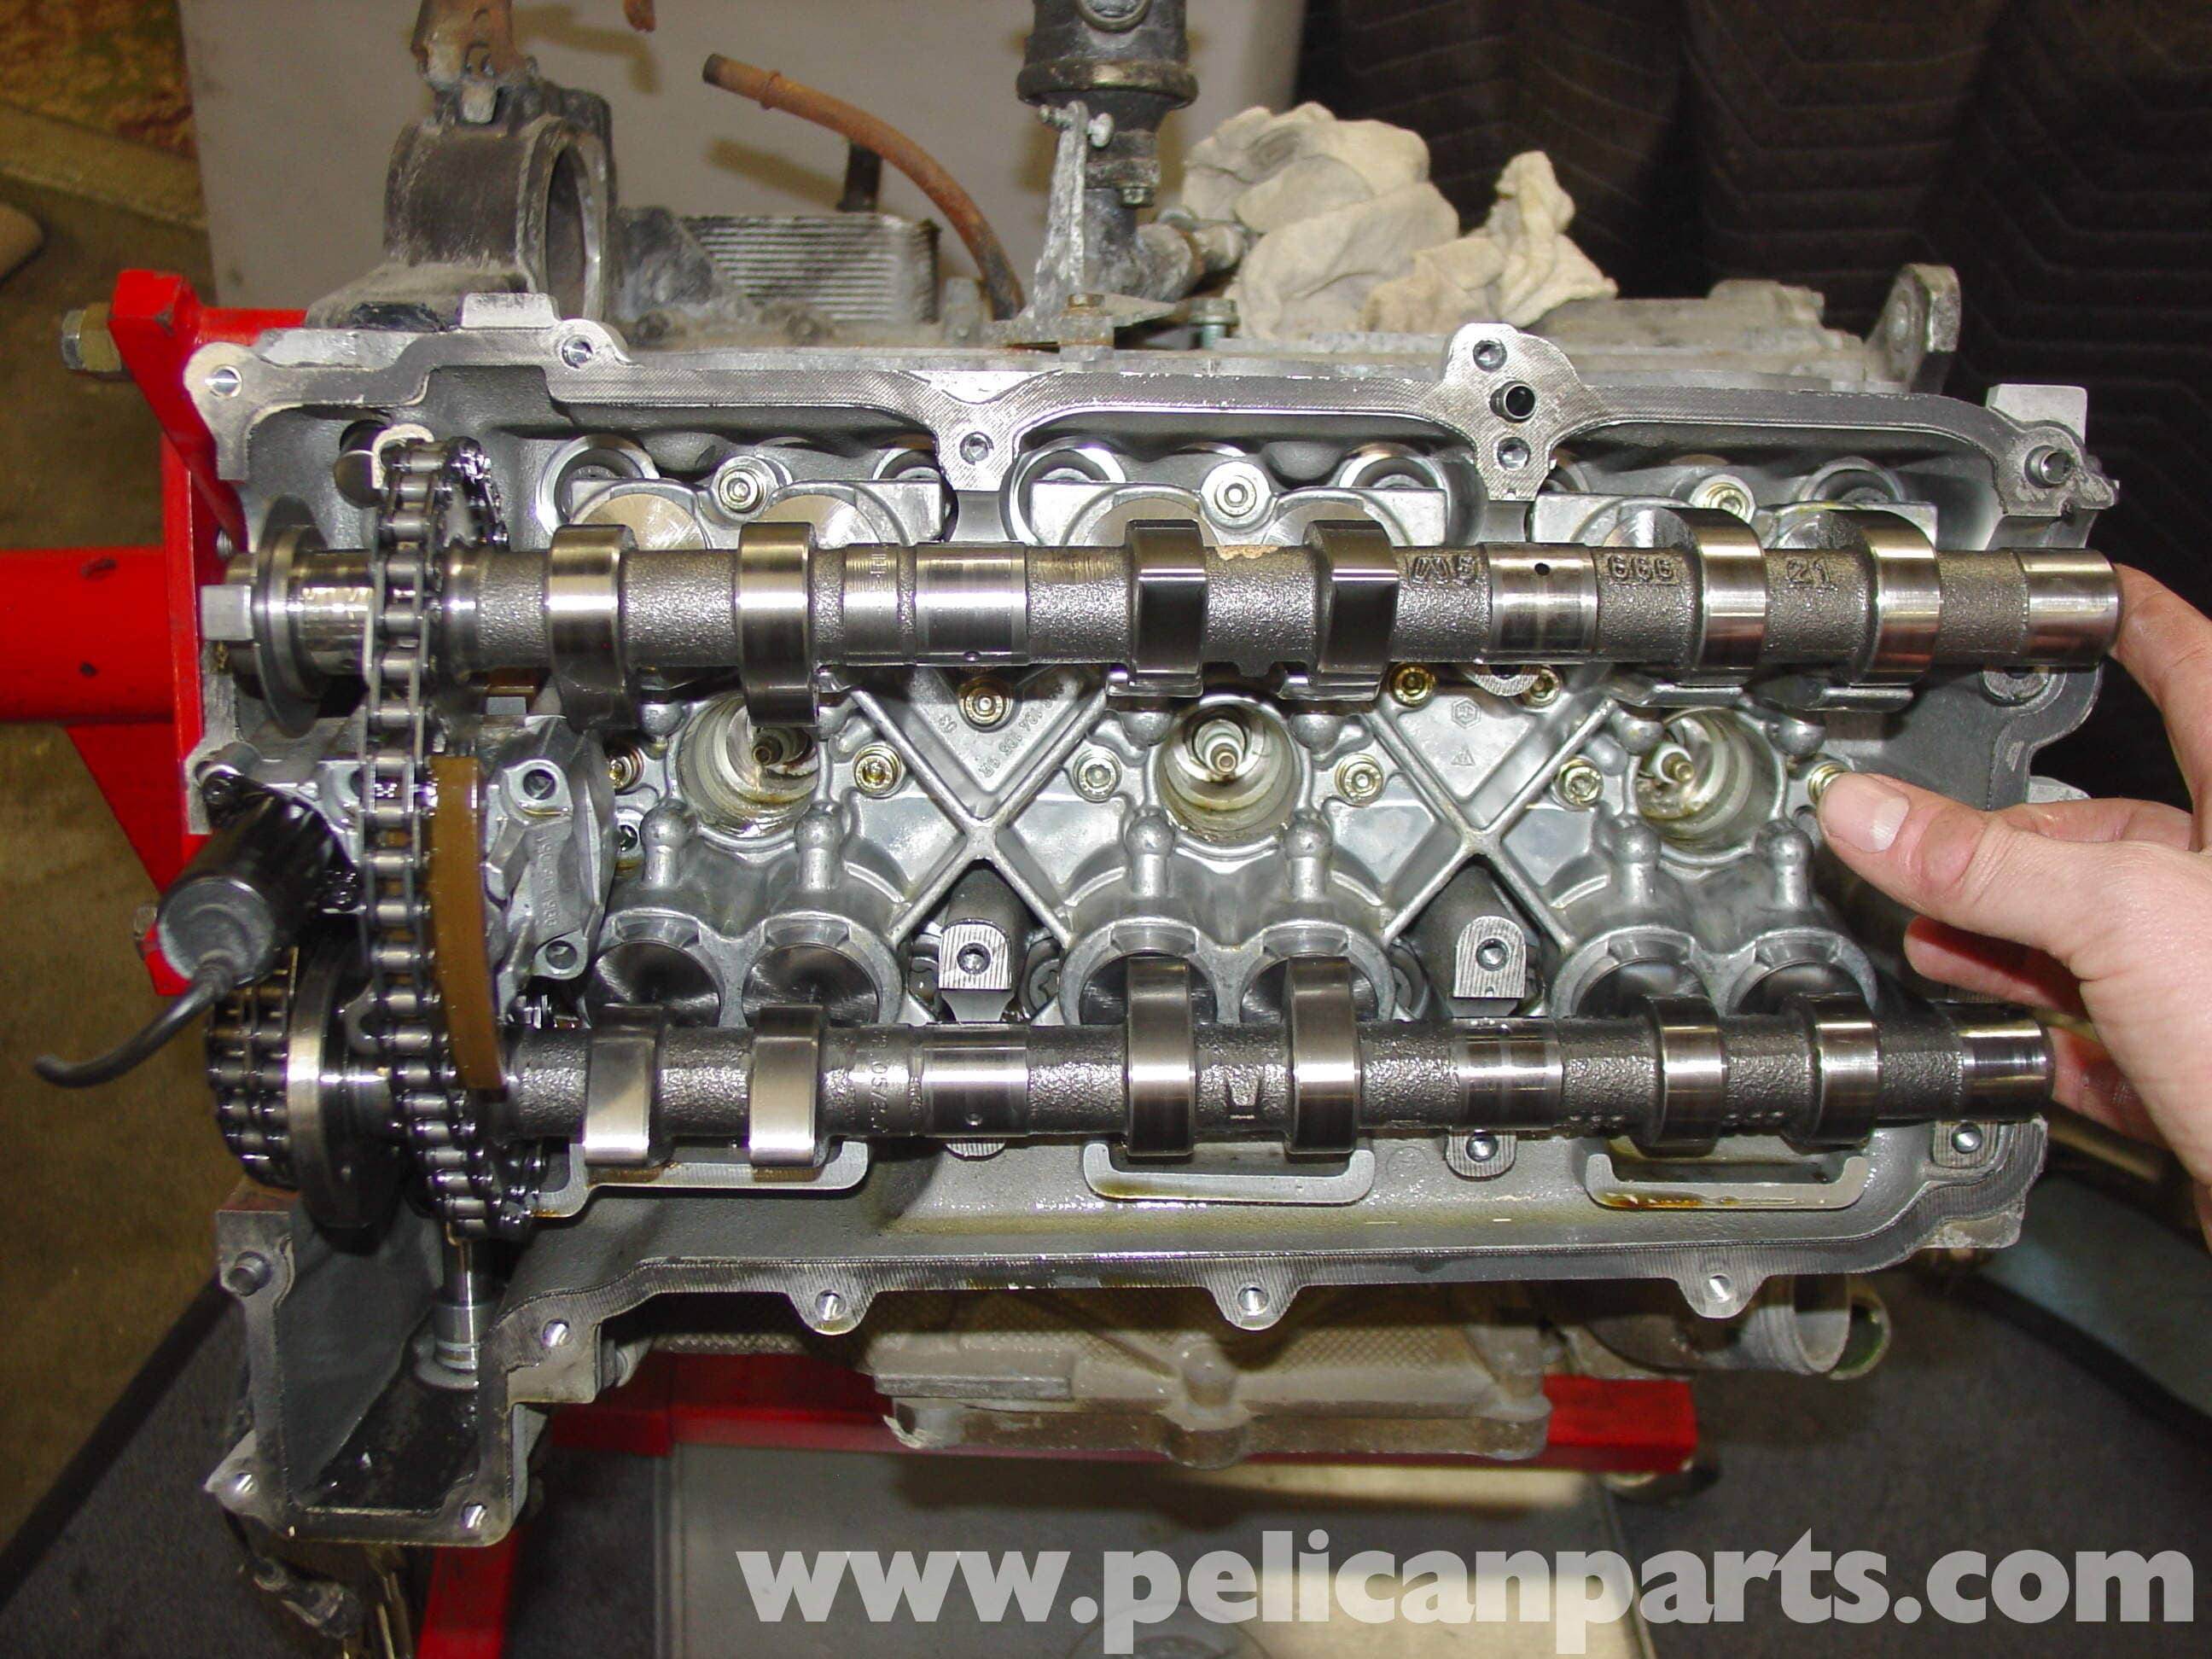 Porsche Boxster Camshaft Diagram Reveolution Of Wiring Engine Upgrade Chain Tensioner Replacement 986 Rh Pelicanparts Com 1999 Parts